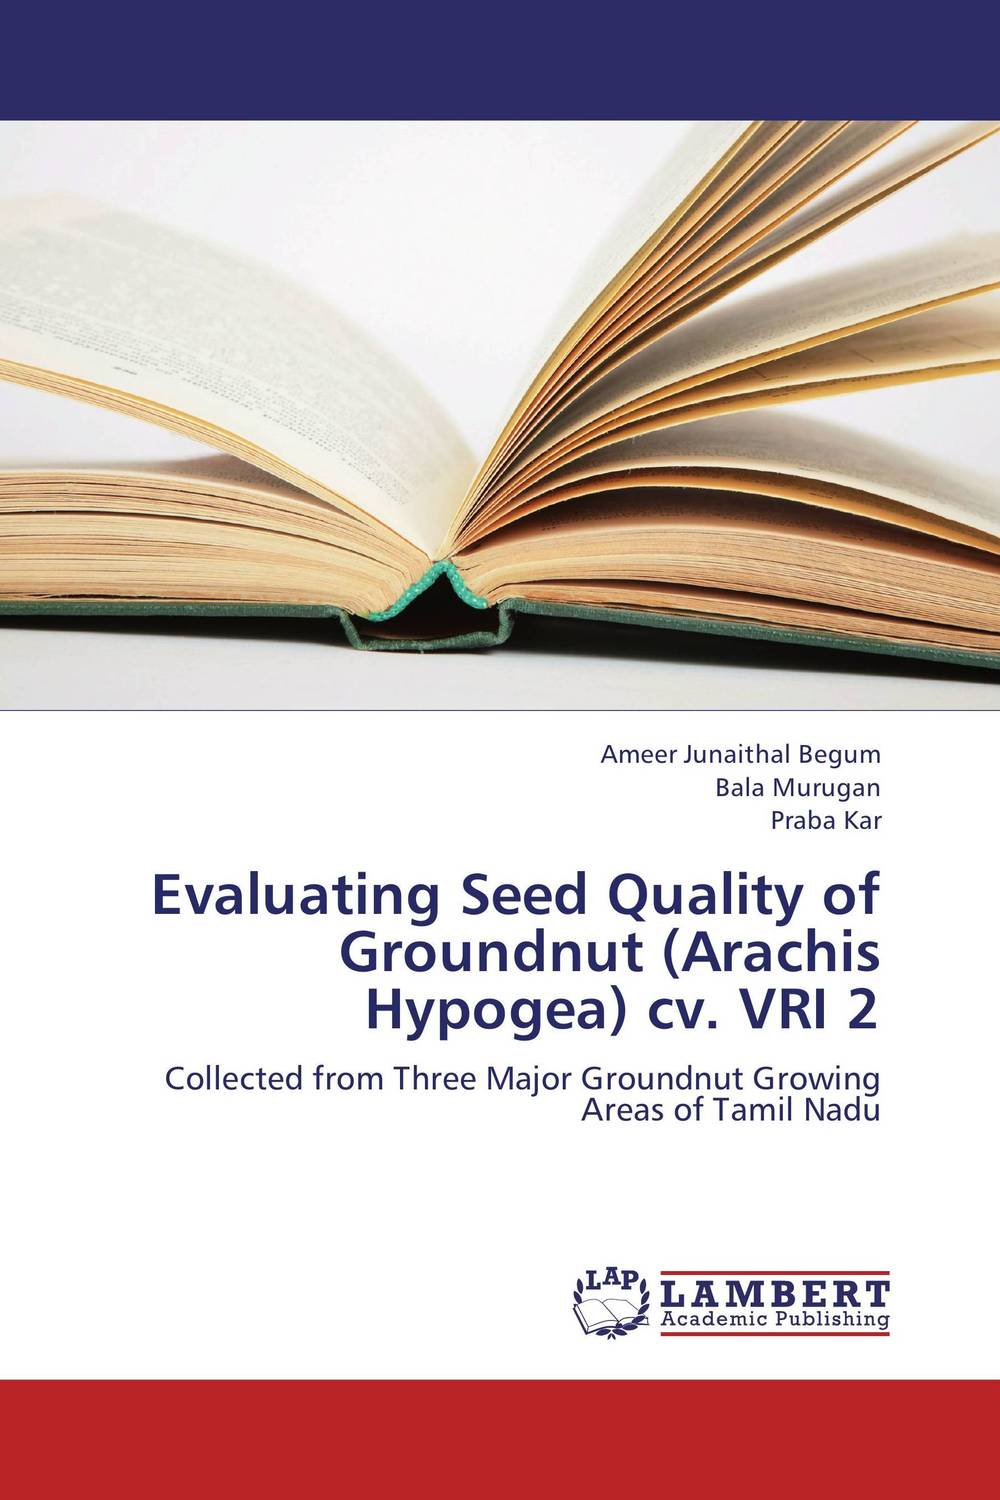 Evaluating Seed Quality of Groundnut (Arachis Hypogea) cv. VRI 2 dilbag singh gill evaluating overheads of integrated multilevel checkpointing algorithms